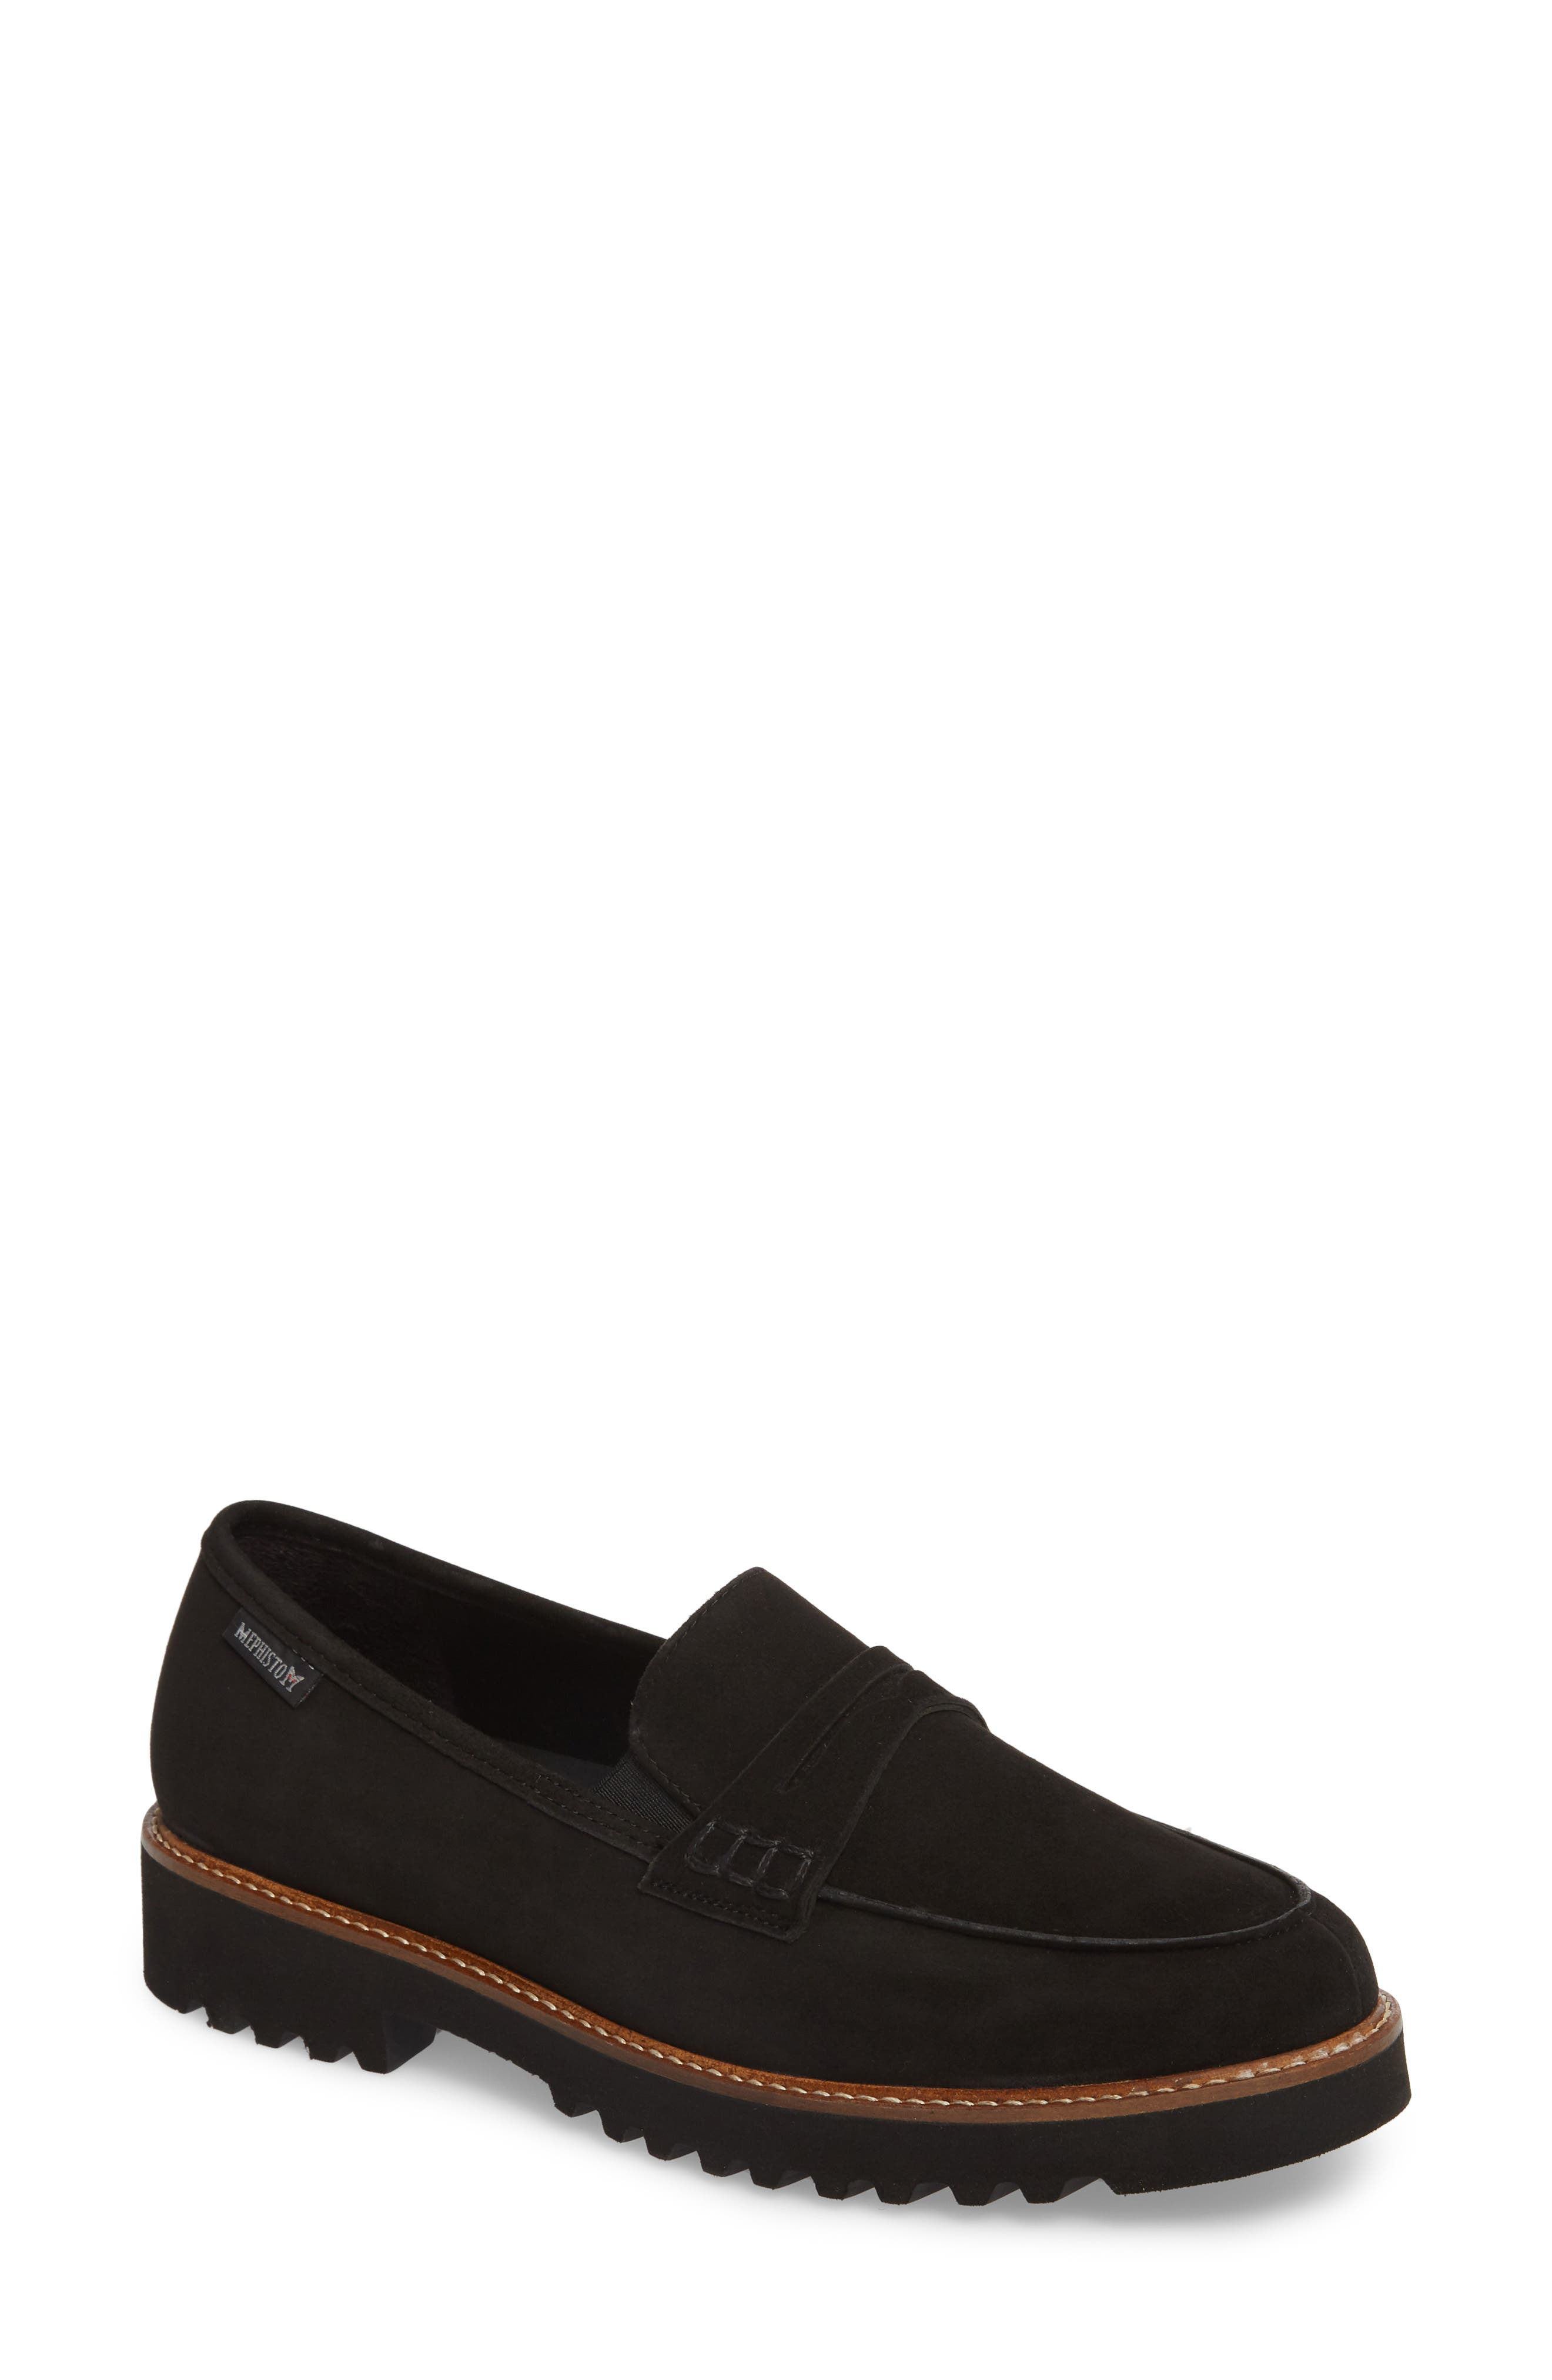 MEPHISTO, Sidney Penny Loafer, Main thumbnail 1, color, BLACK/BLACK SUEDE